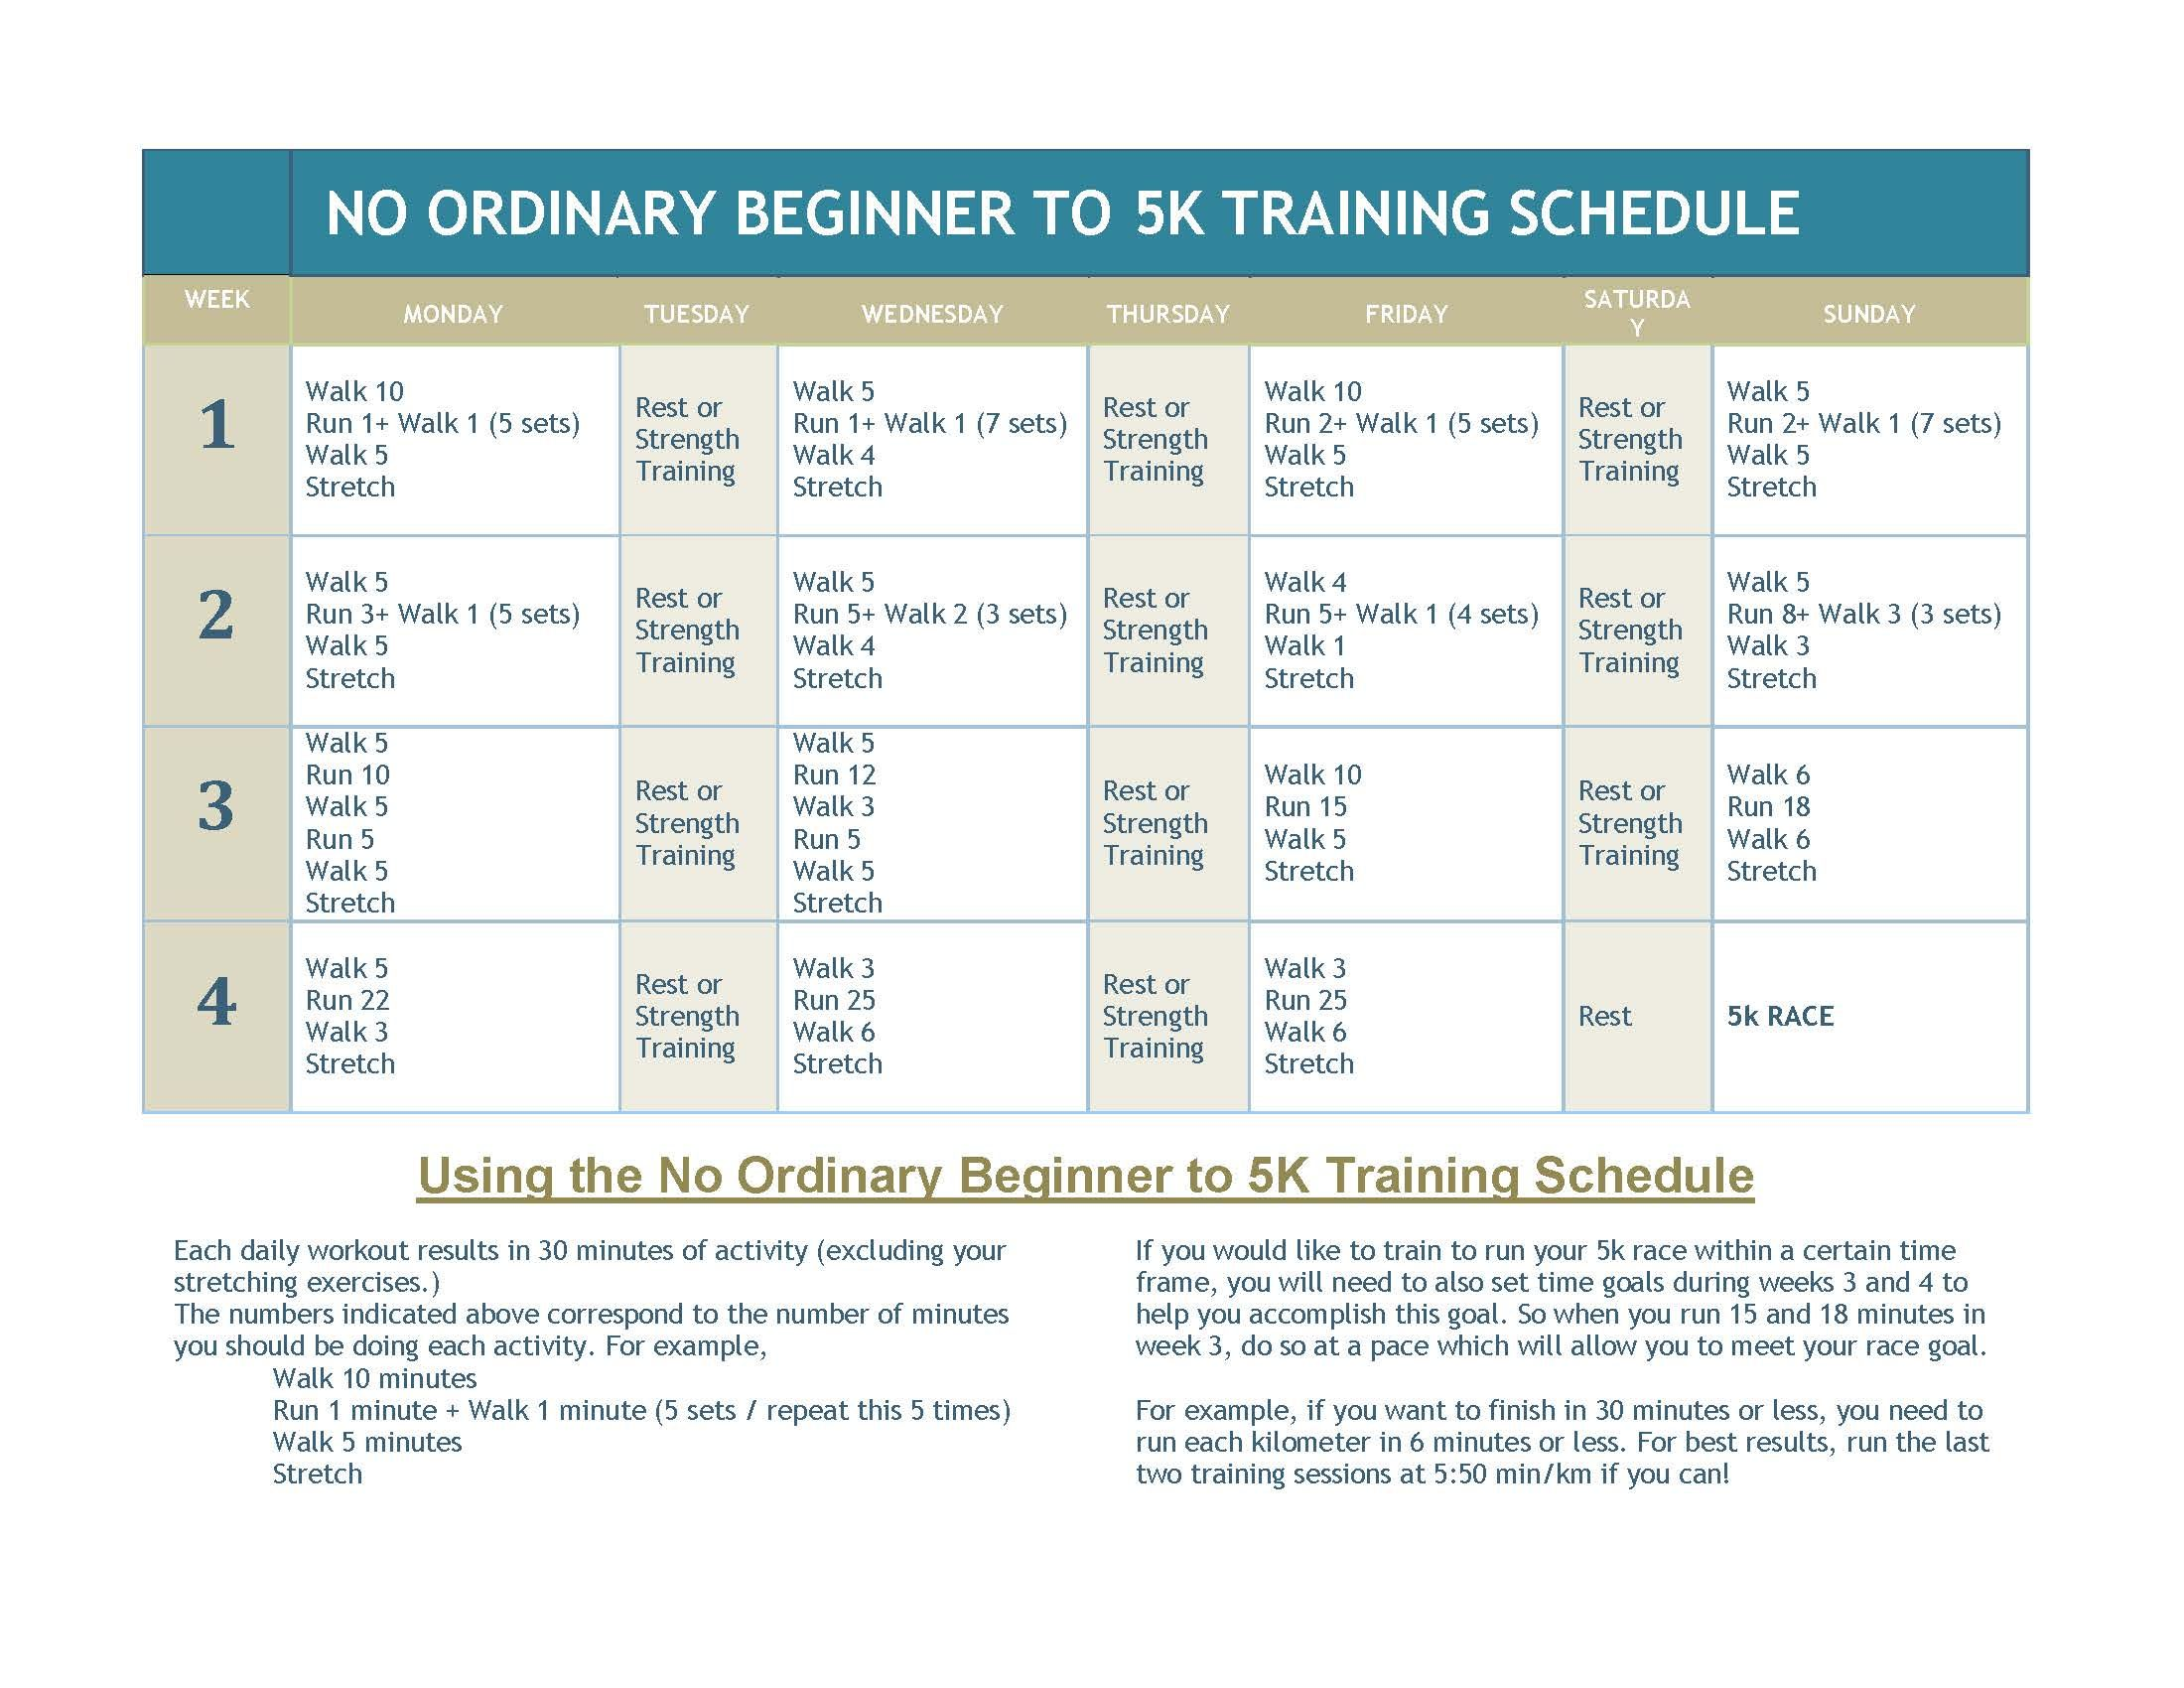 no-ordinary-beginner-to-5k-training-schedule in 4 weeks. quicker